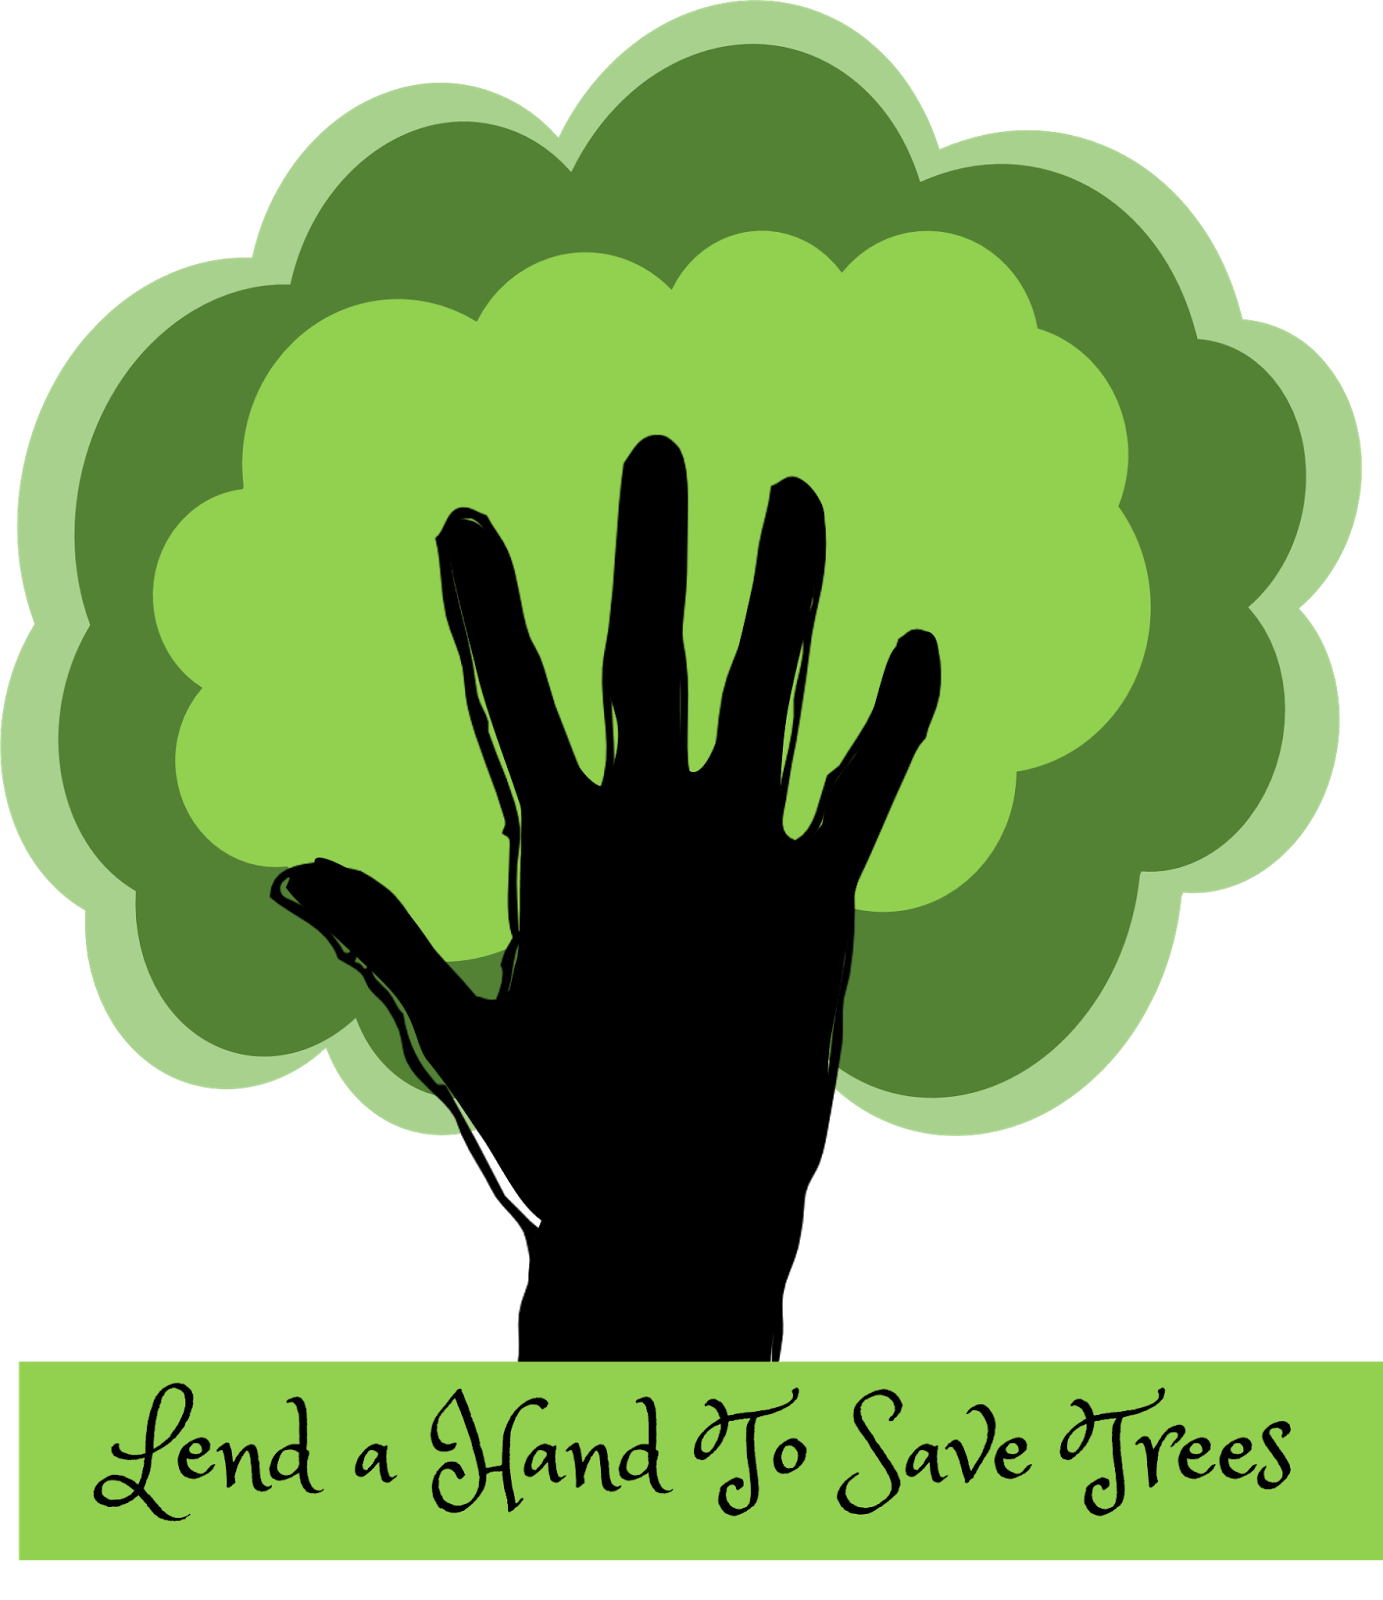 Save Trees Slogan Posters.